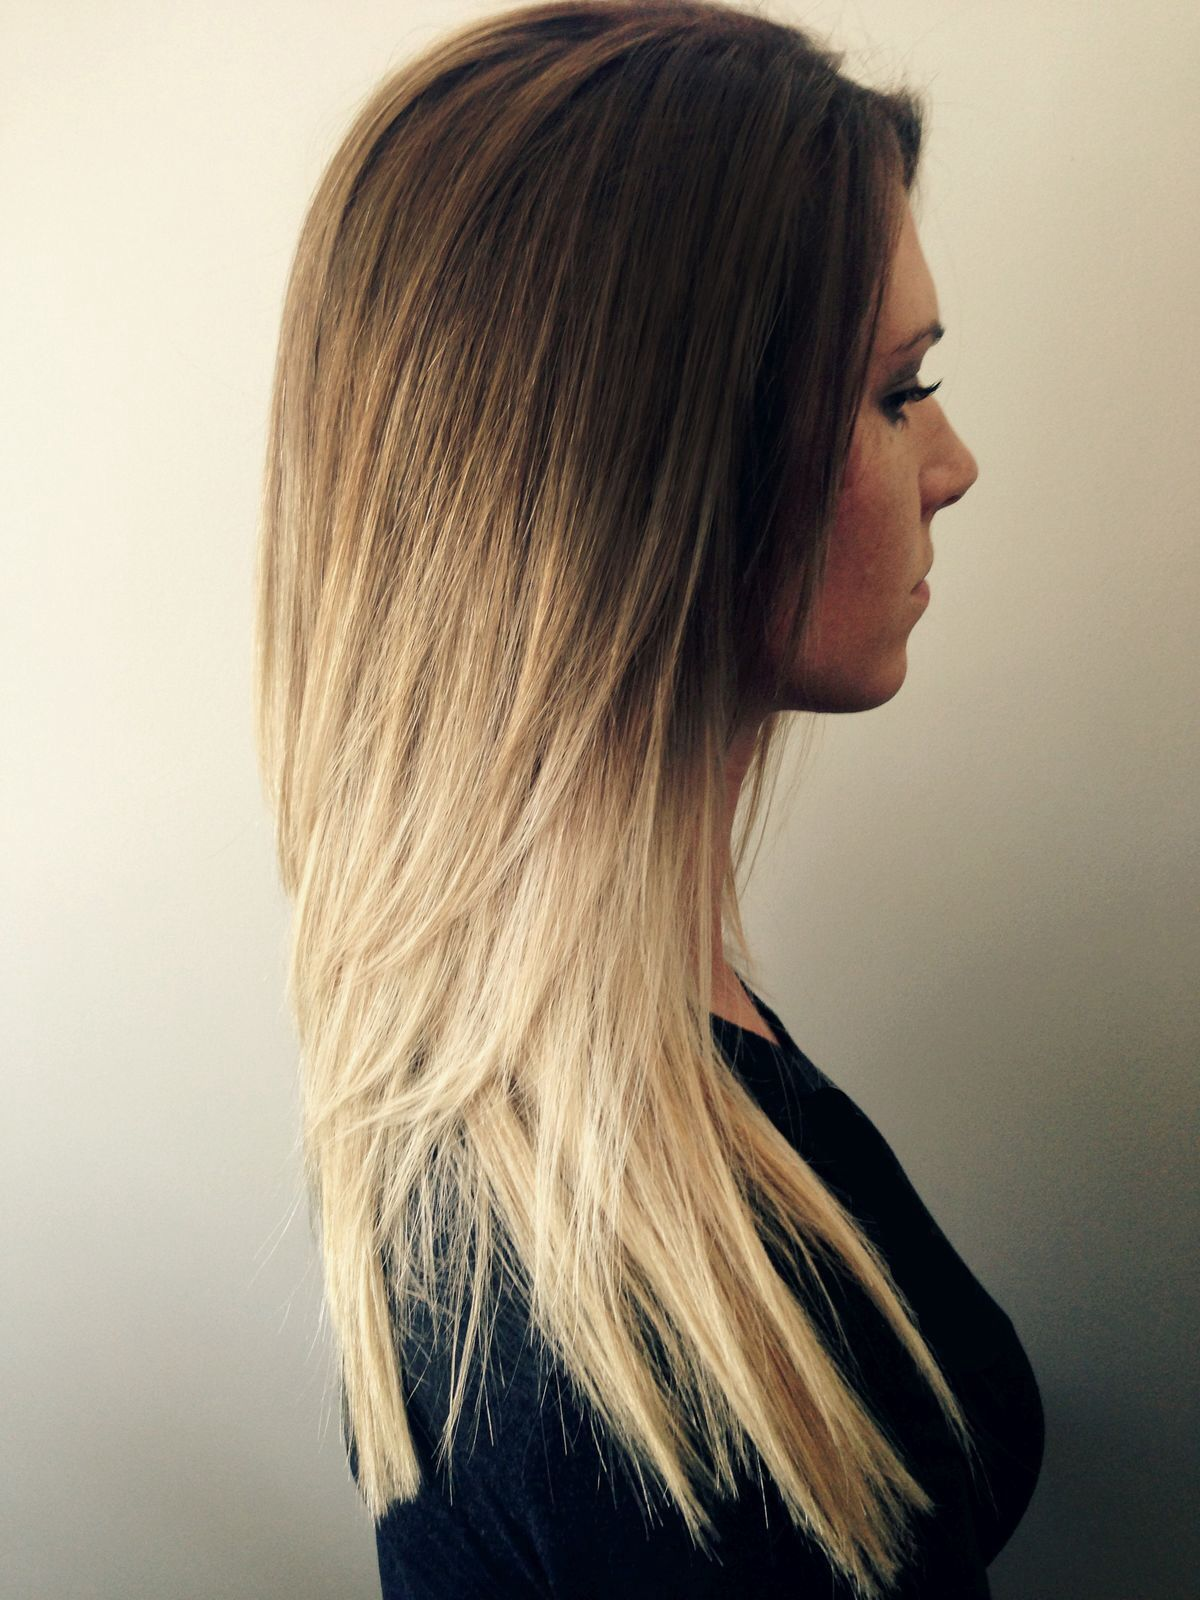 40 Hottest Hair Color Ideas for 2018 - Brown, Red, Blonde, Balayage, Ombre The ombré color is awesome. The cut/layers are good too. Hottest Hair Color Ideas for 2018 - Brown, Red, Blonde, Balayage, Ombre The ombré color is awesome. The cut/layers are good too.The ombré color is awesome. The cut/layers are good too.